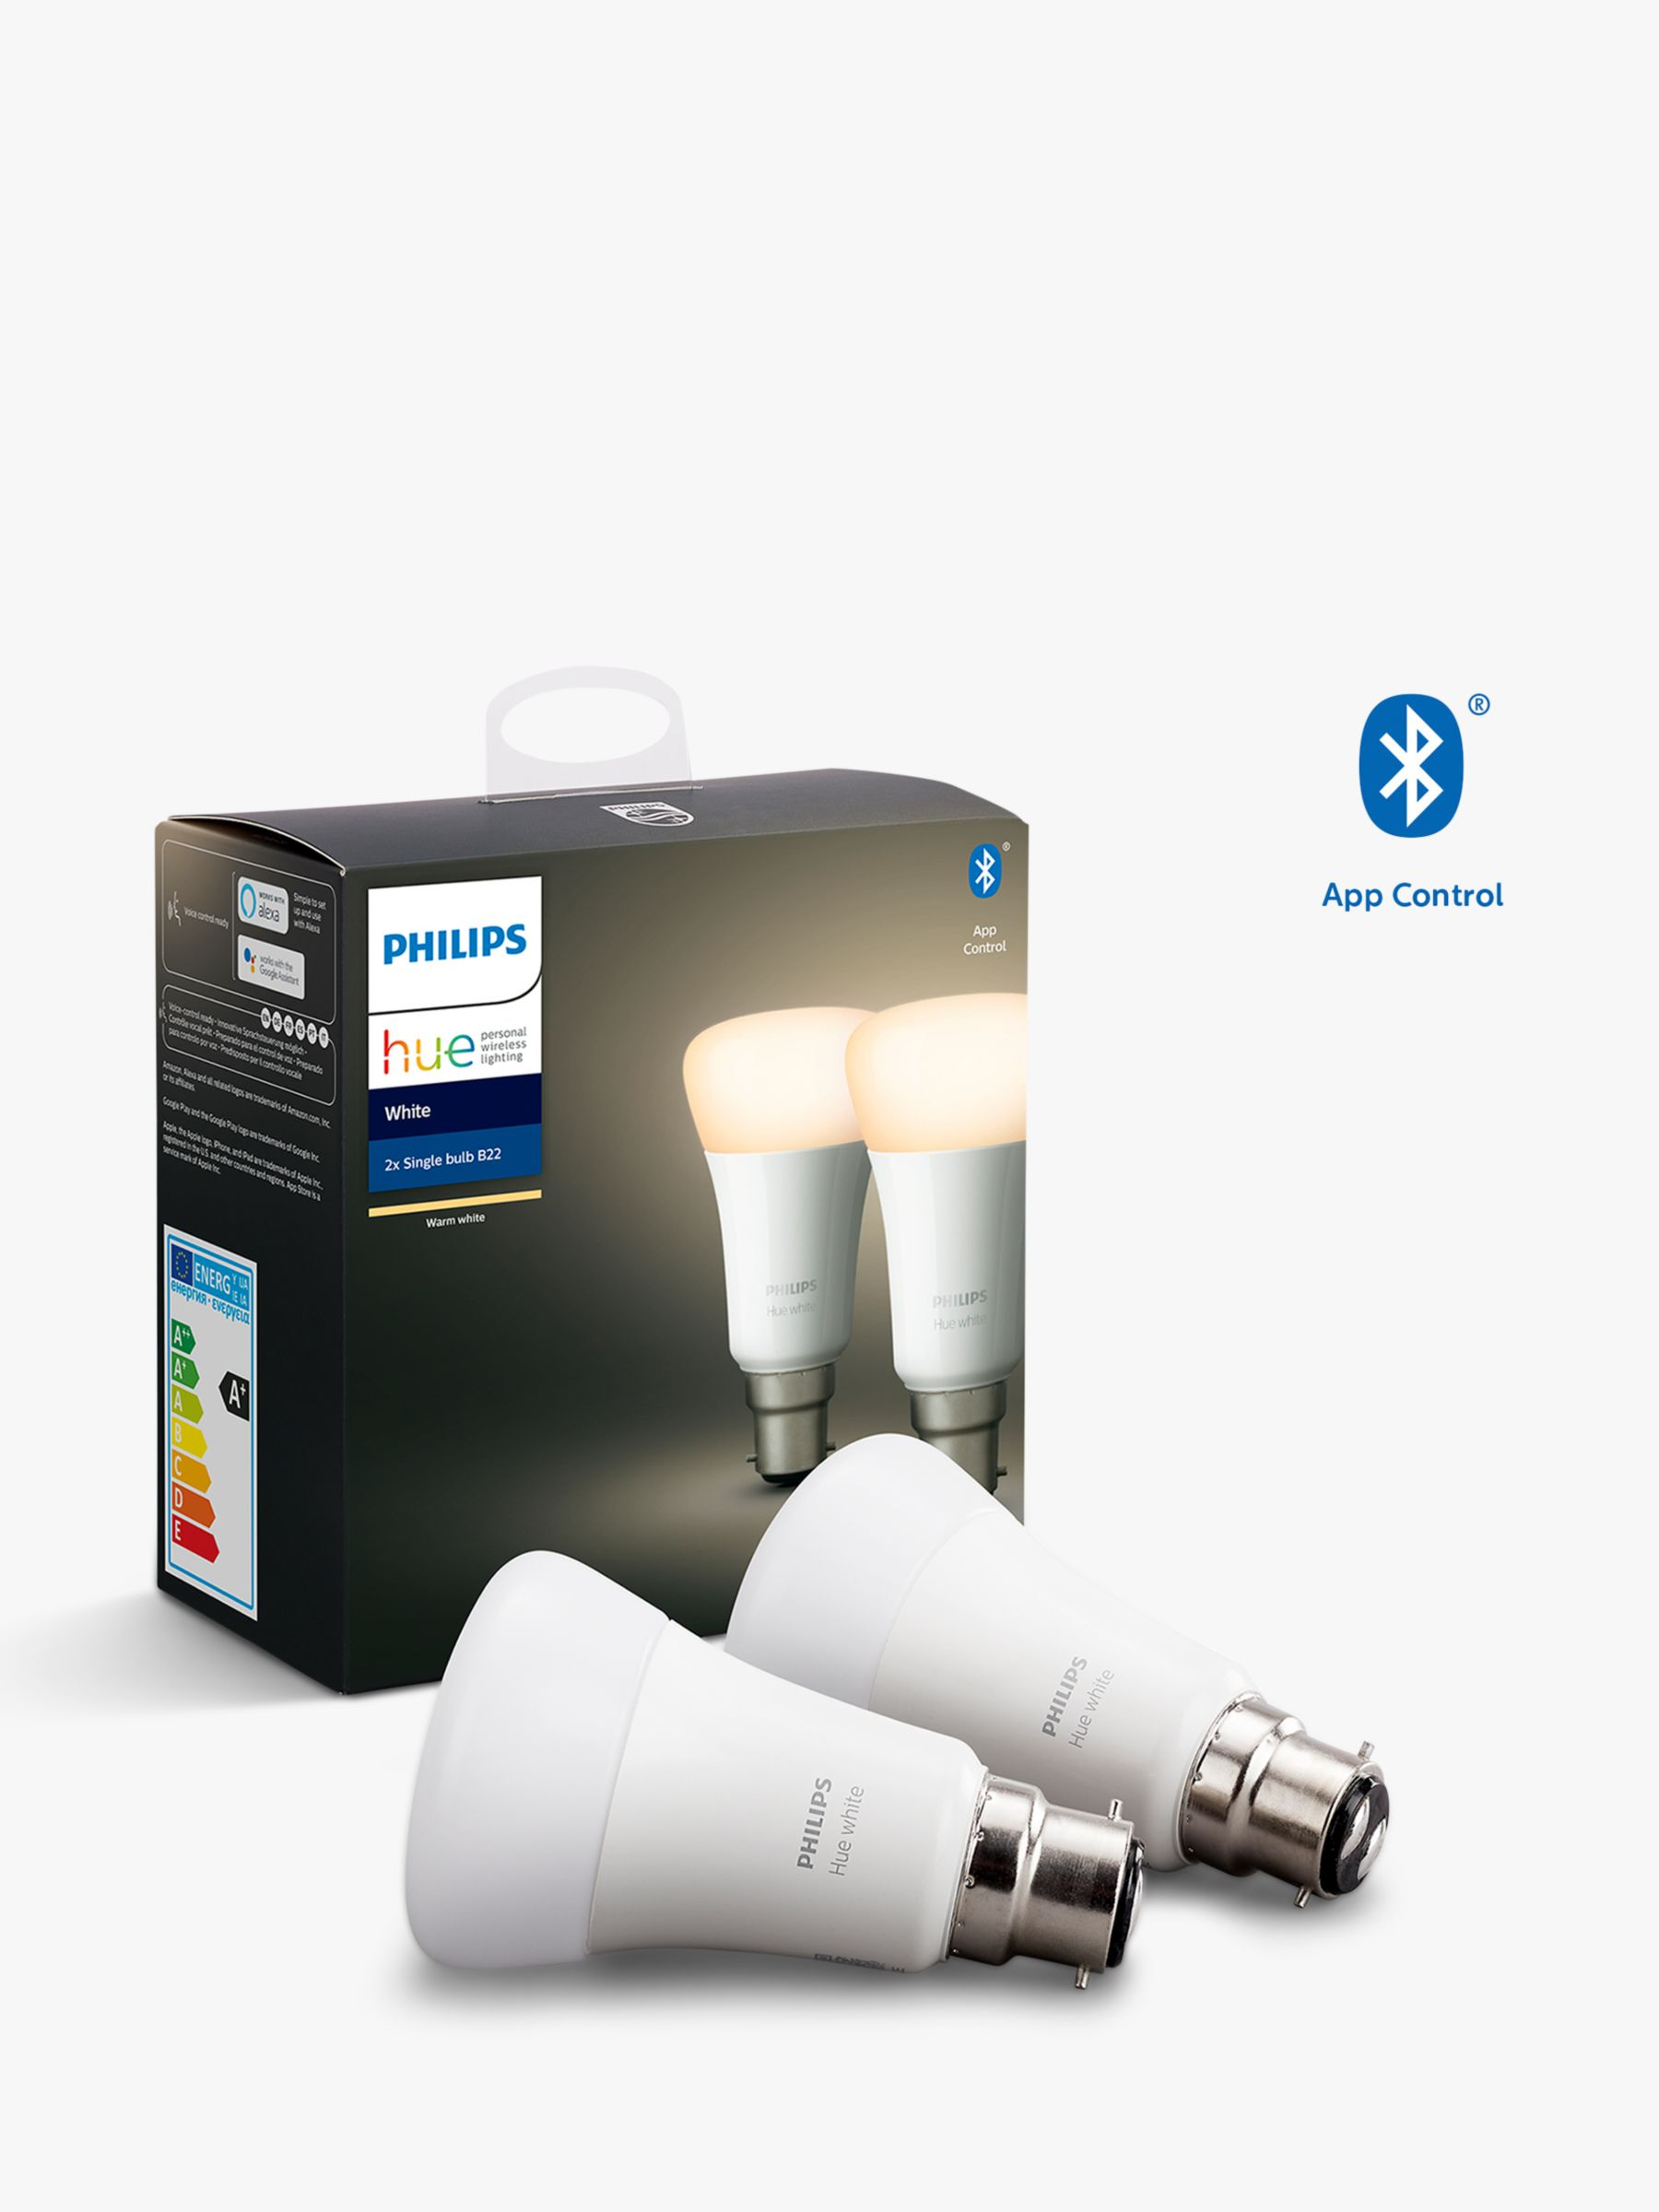 Philips Philips Hue White Wireless Lighting LED Light Bulb with Bluetooth, 9W A60 B22 Bayonet Cap Bulb, Pack of 2